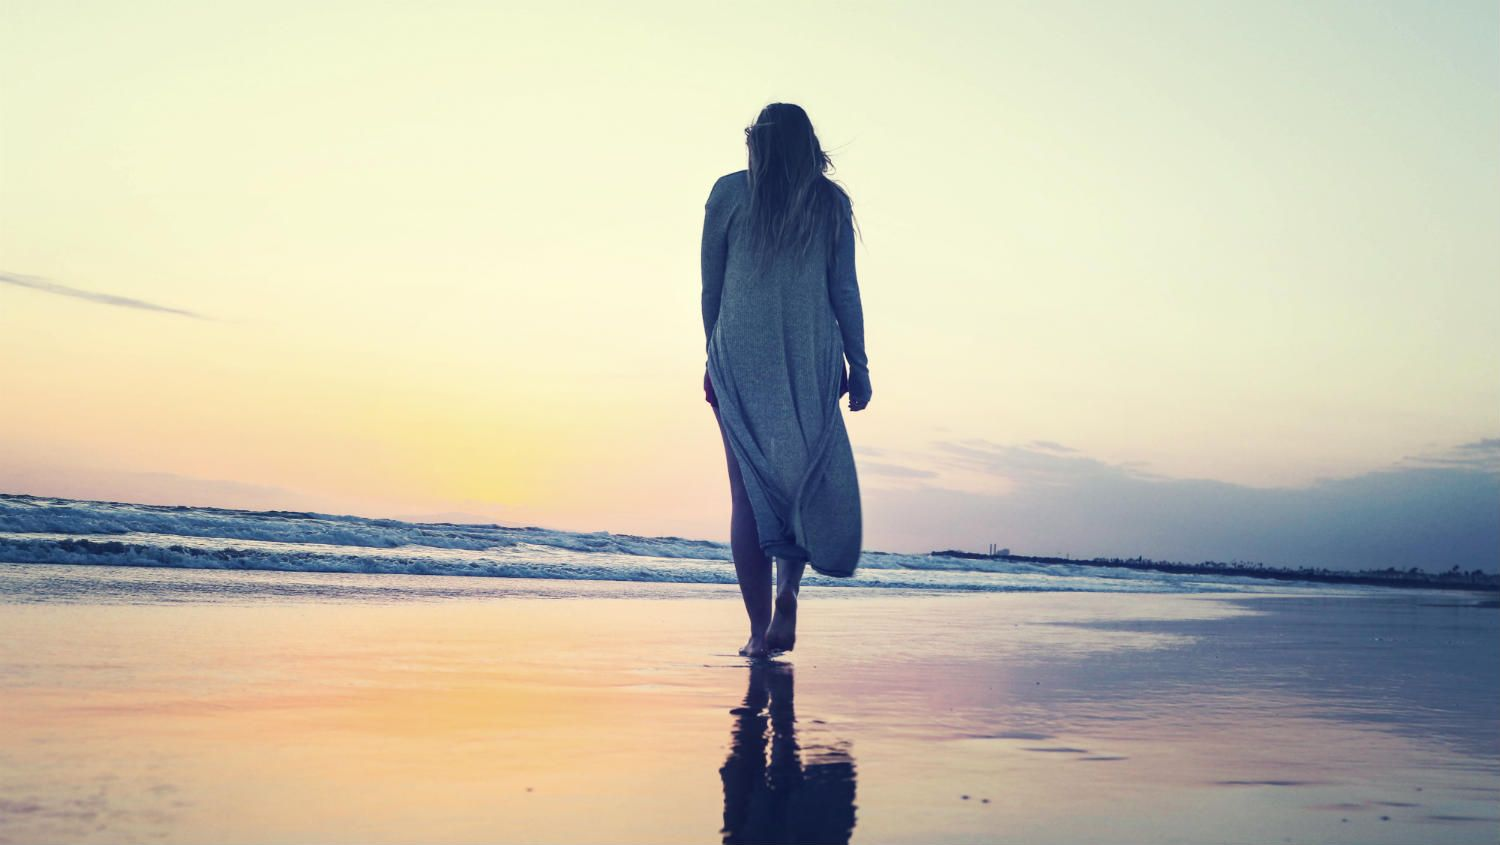 Woman walking alone on a beach